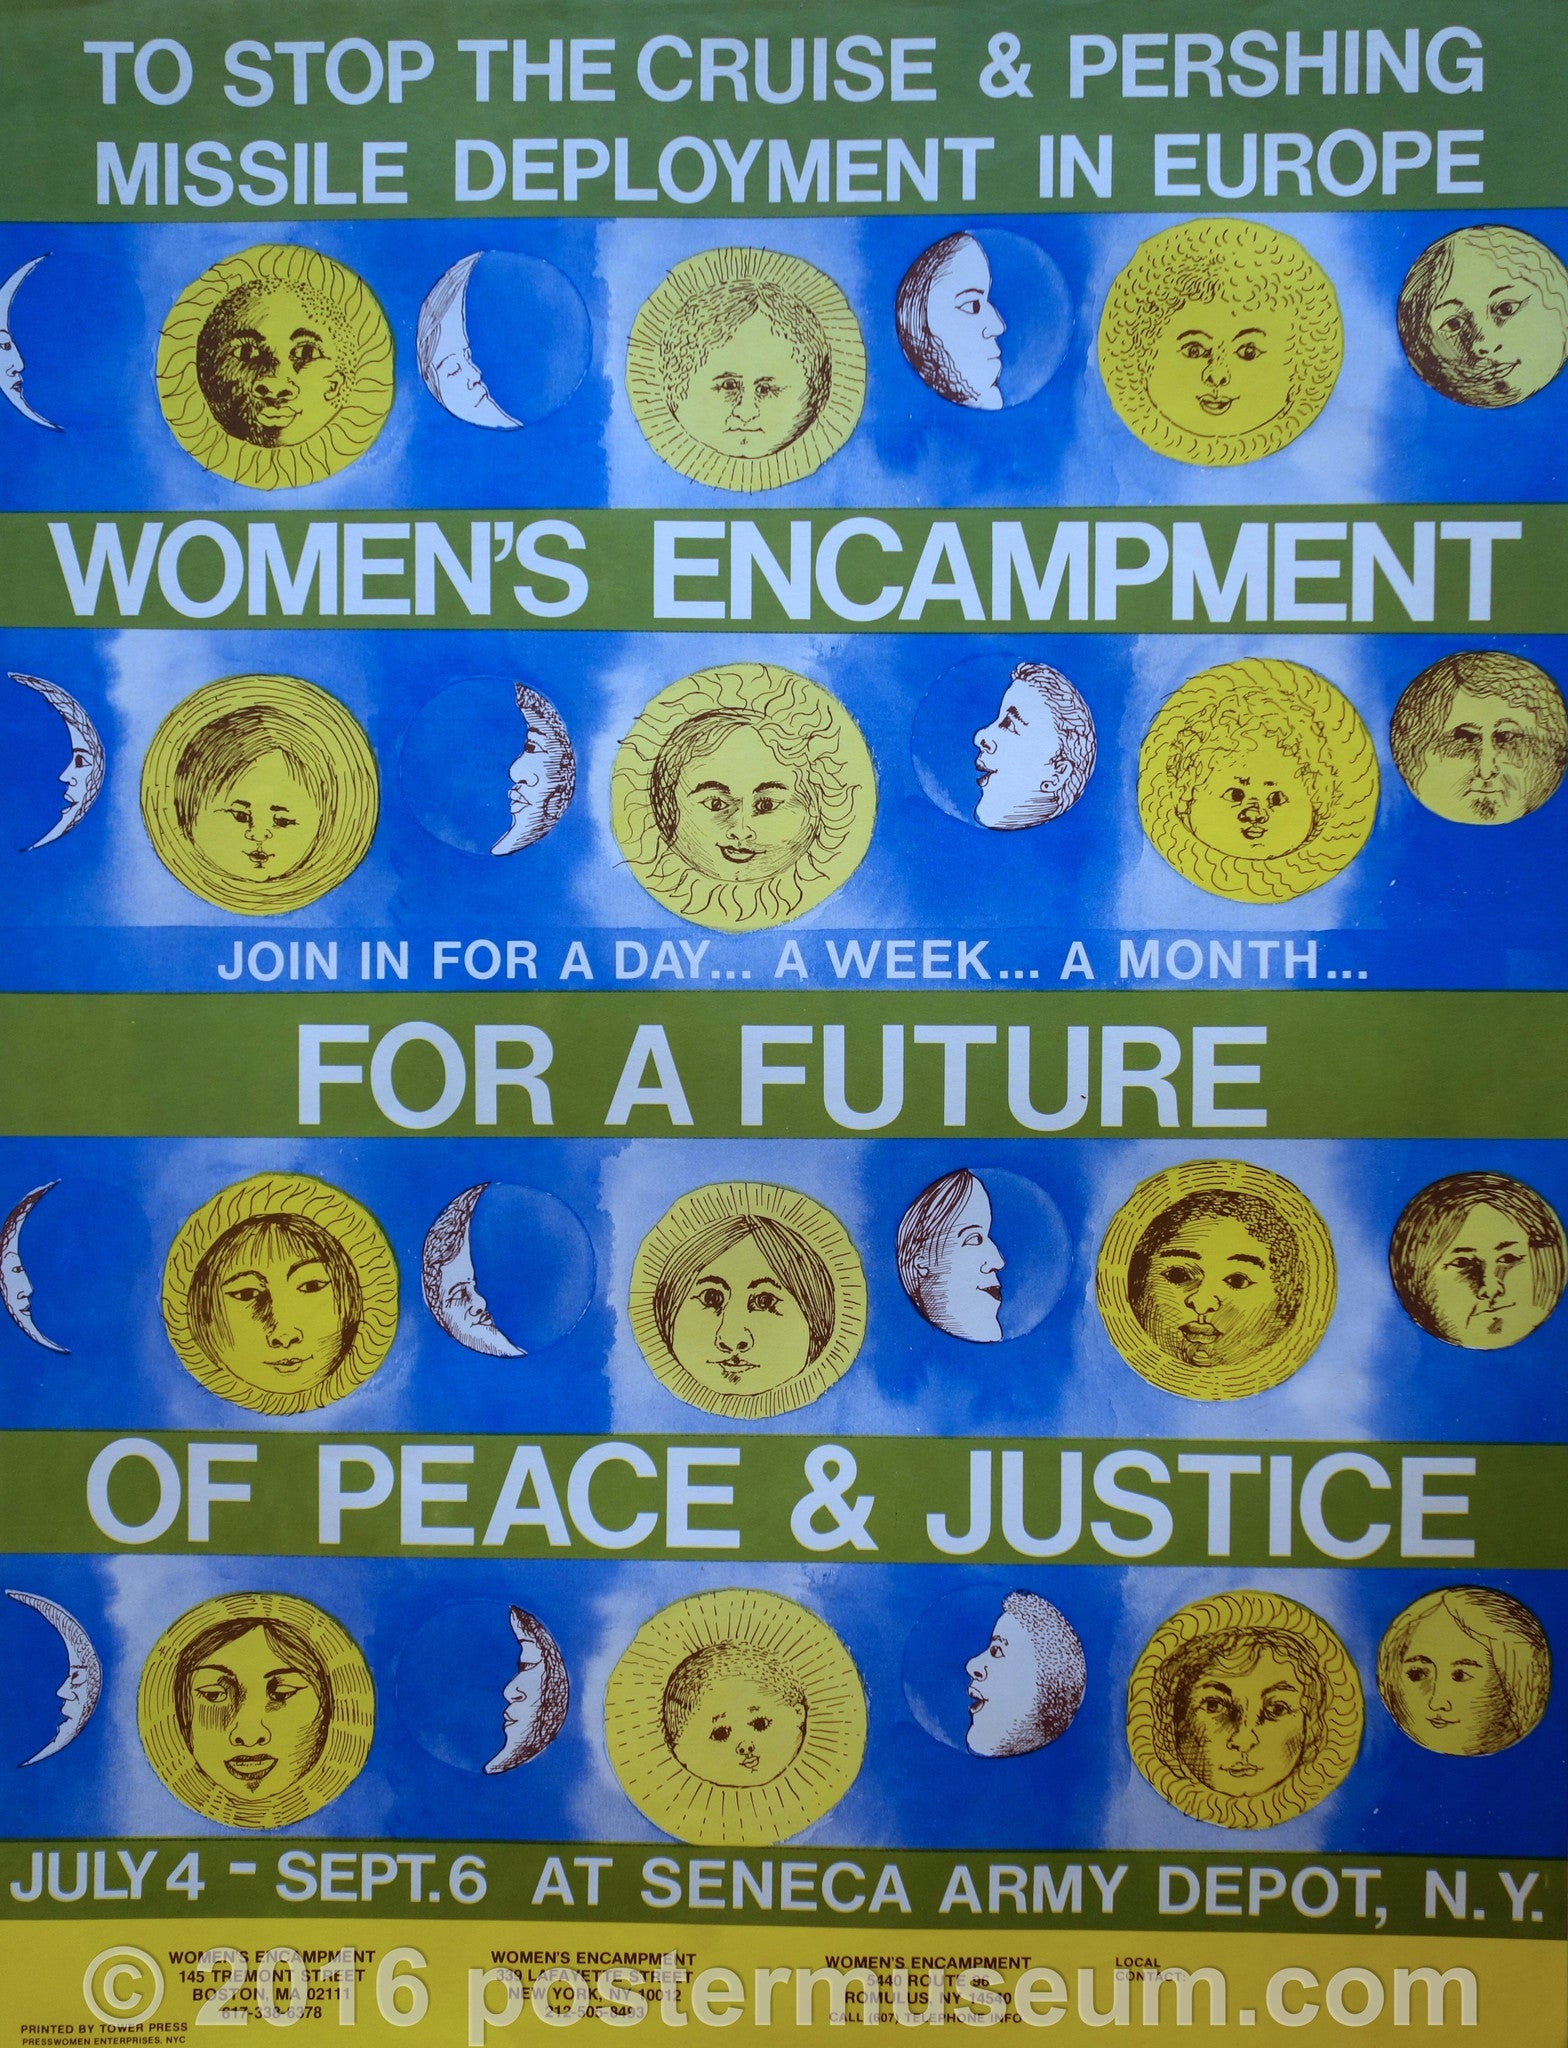 Women's Encampment for a future of peace & justice